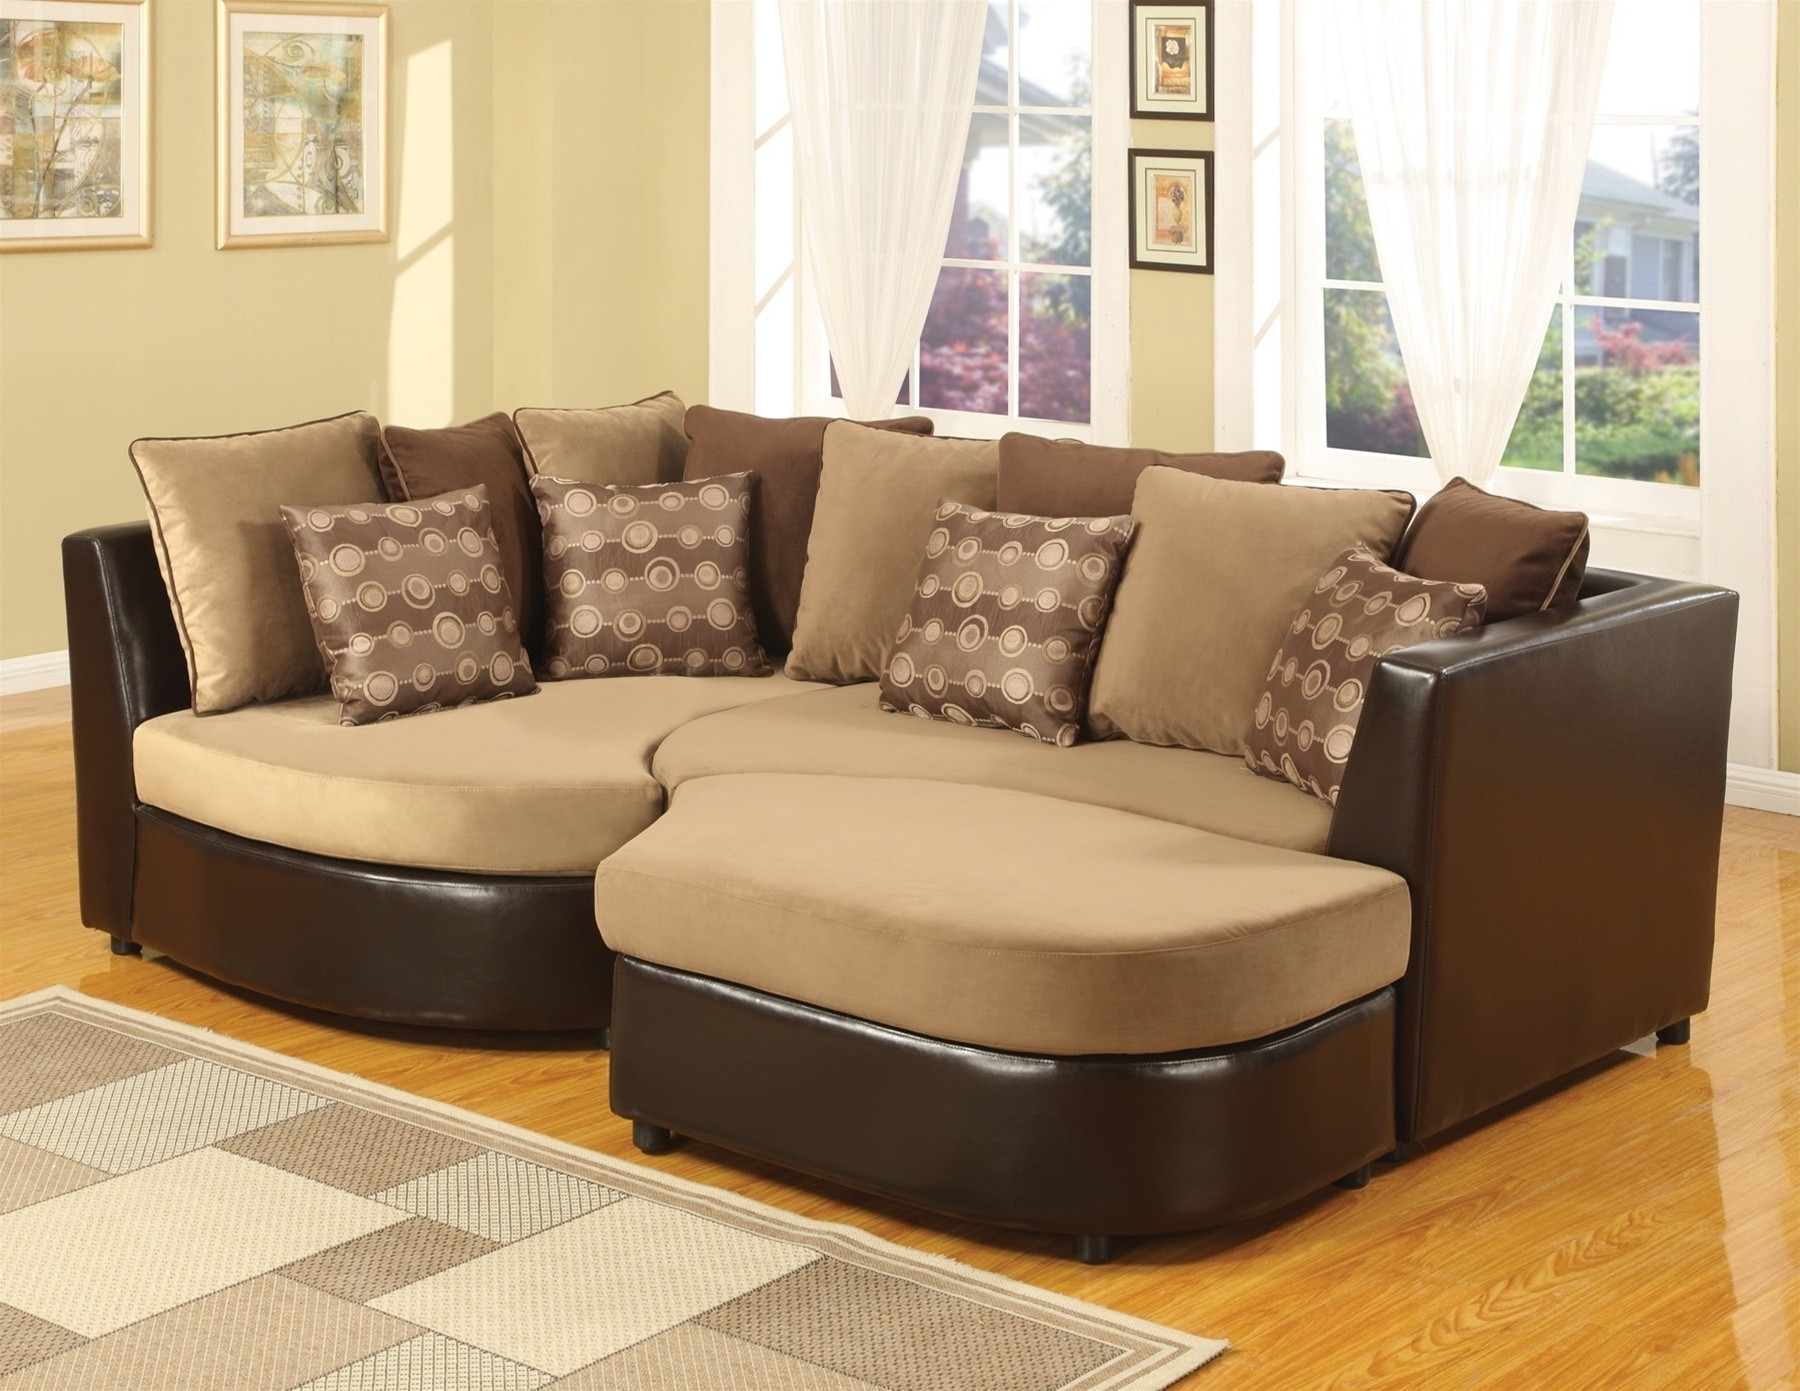 Inexpensive Sectional Sofas For Small Spaces Regarding Latest Living Room : Best Small Modern Sectionals Amazing Sectional Sofas (Gallery 20 of 20)